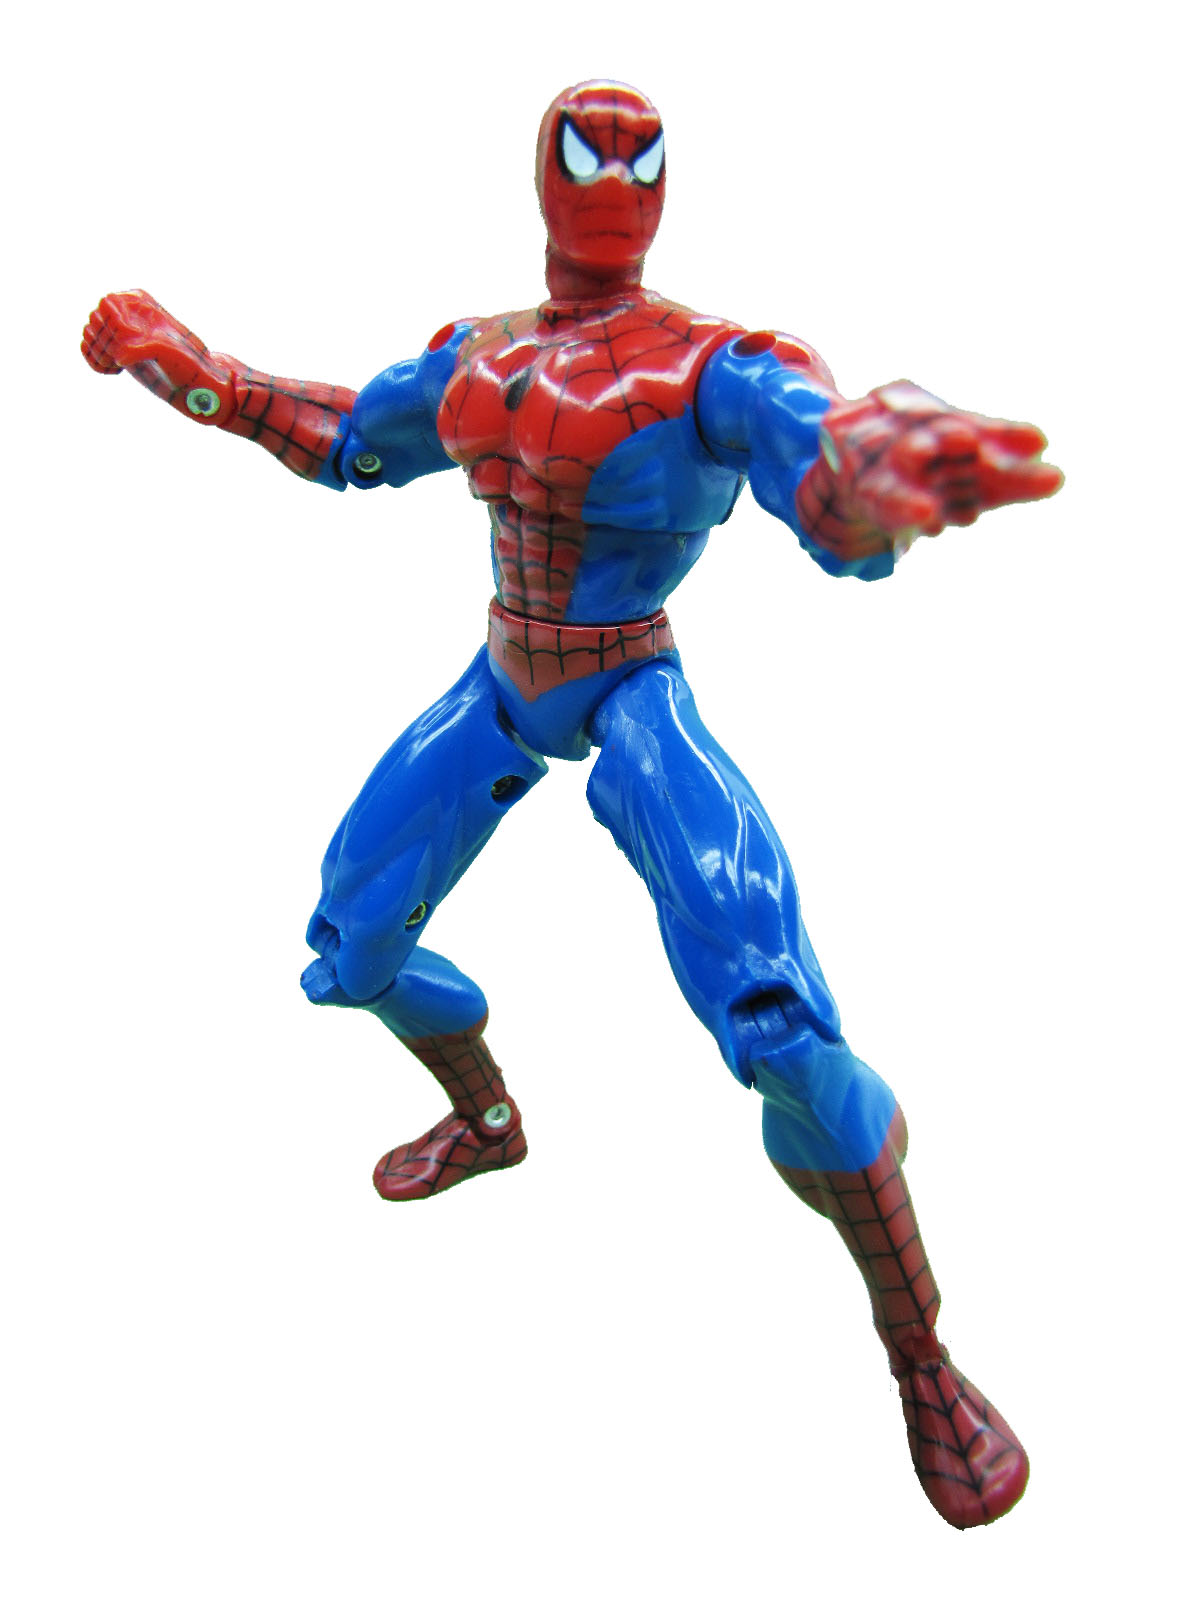 Spider-Man Animated Series Spider-Man Super Poseable Complete